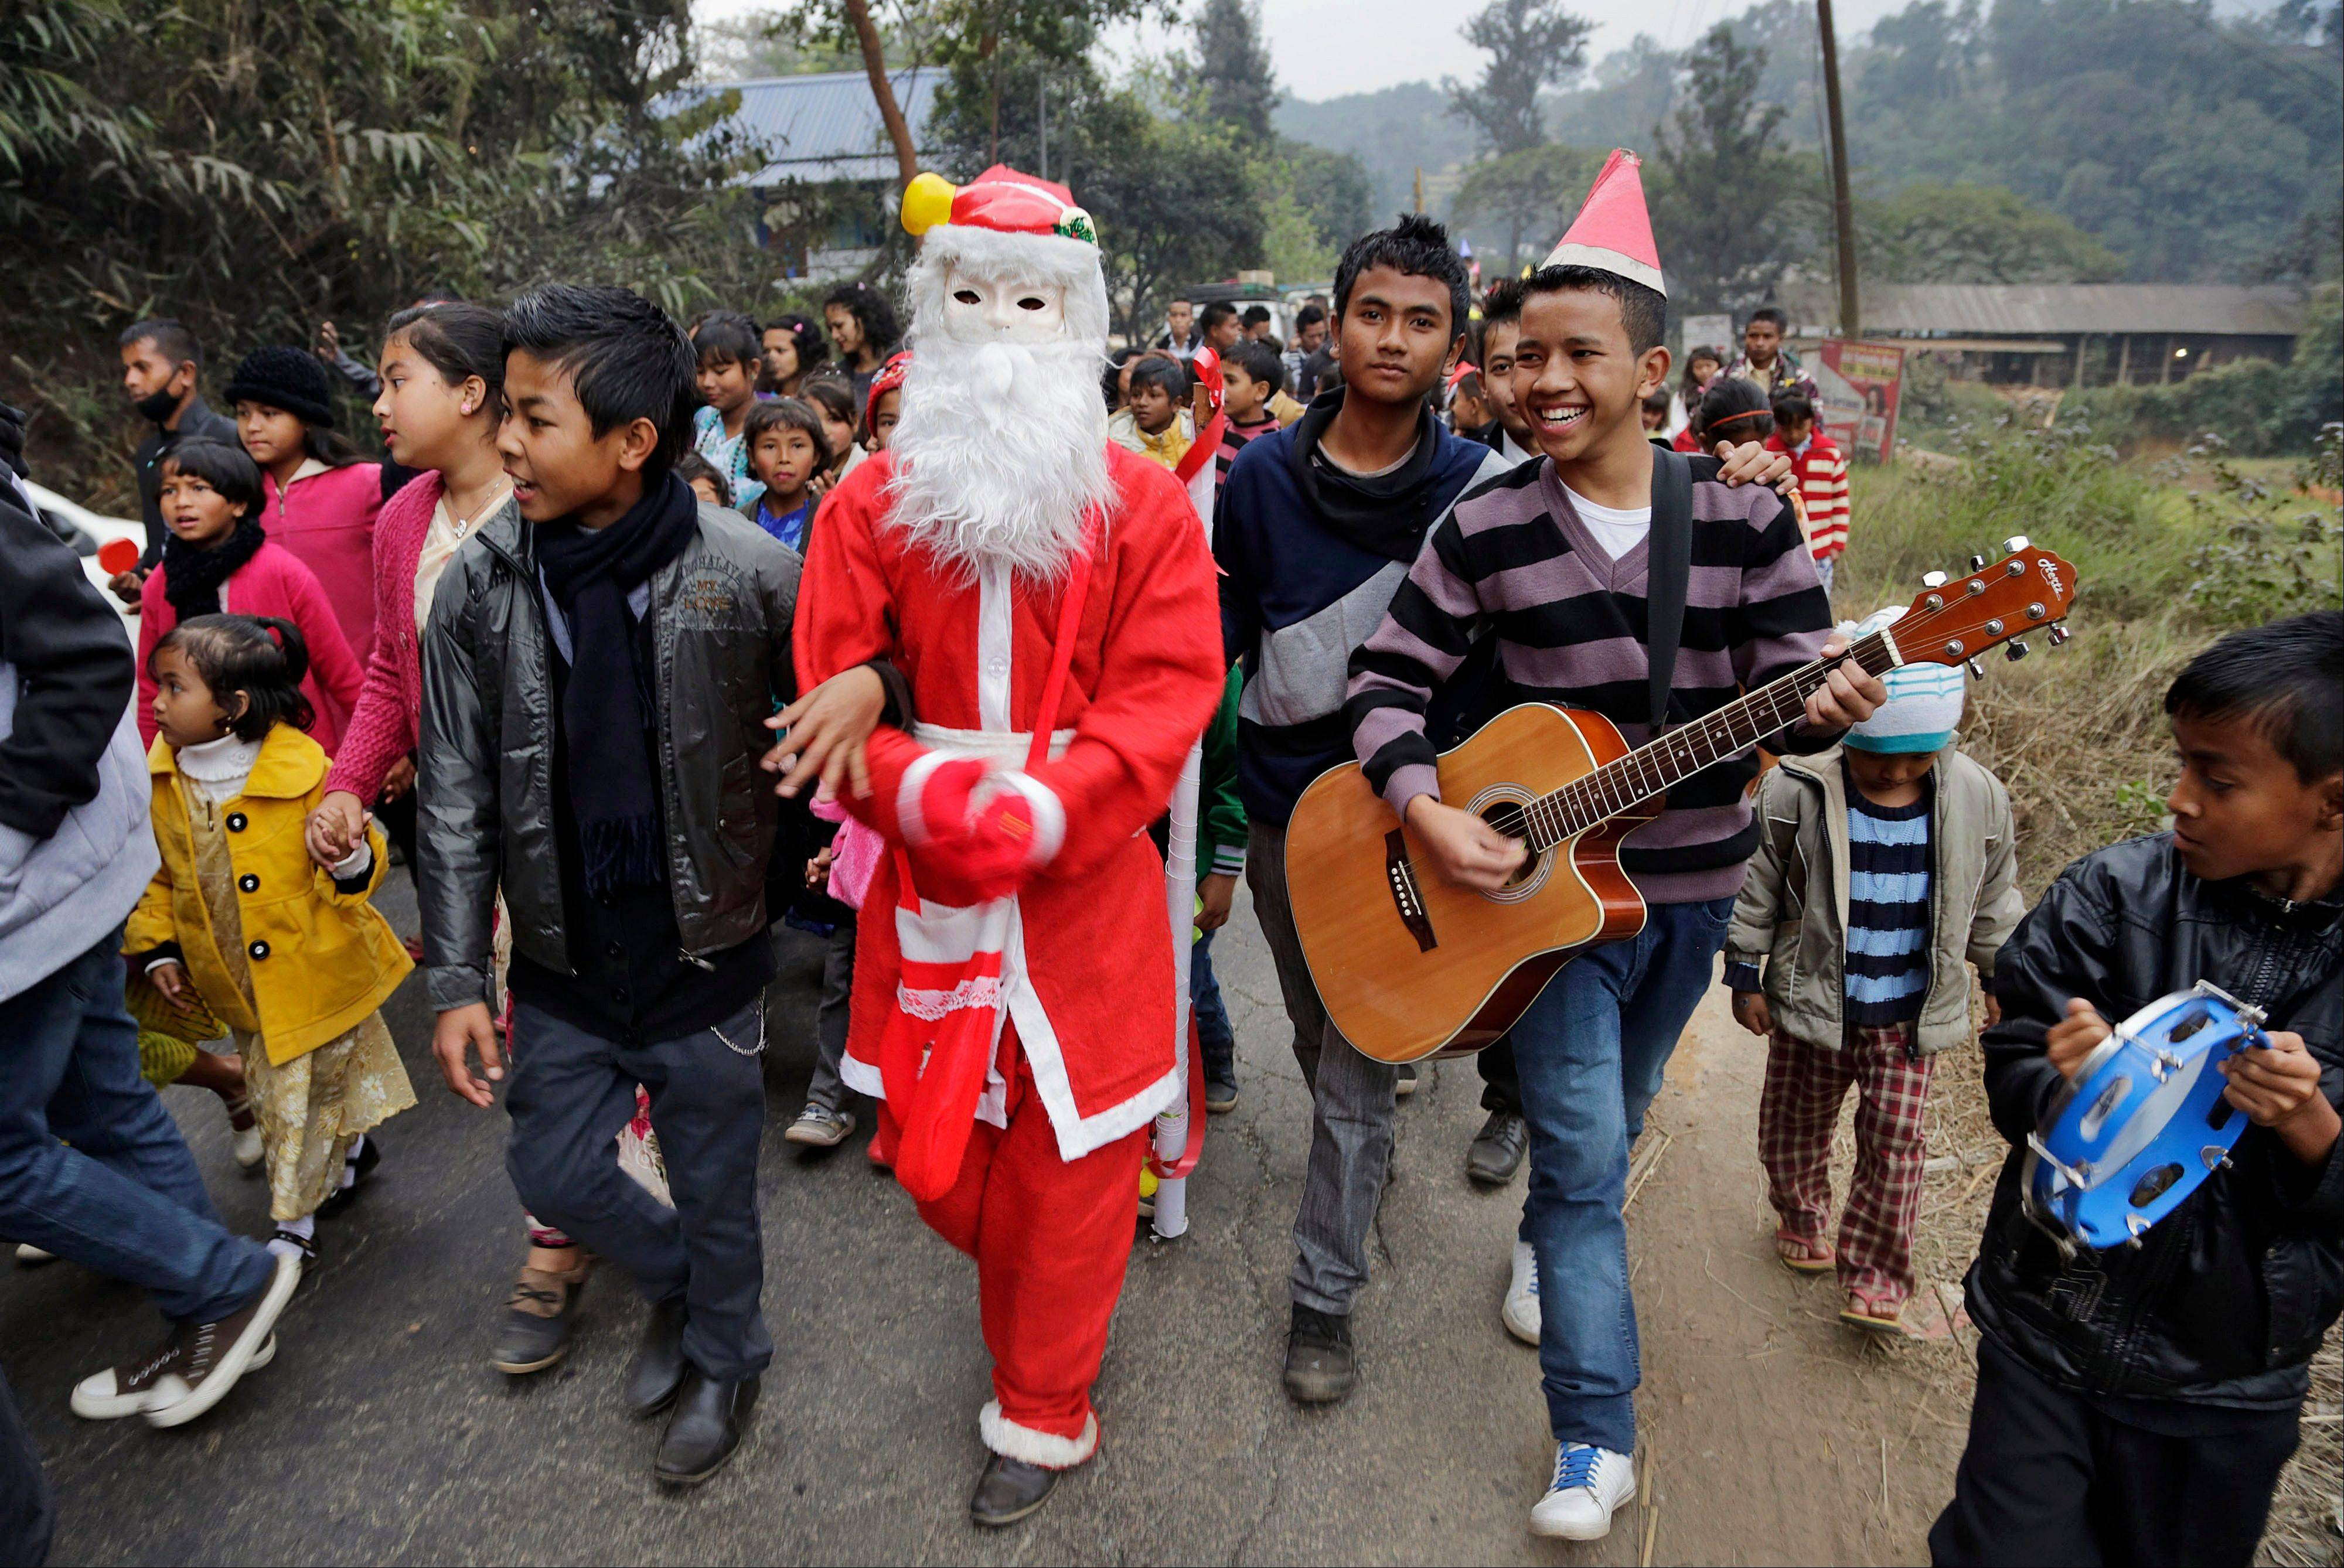 Indian people sing as they walk with a man dressed as Santa Claus ahead of Christmas in Umsning, in Meghalaya, India, Tuesday, Dec. 24, 2013. Though Hindus and Muslims comprise the majority of the population in India, Christmas is celebrated with much fanfare.